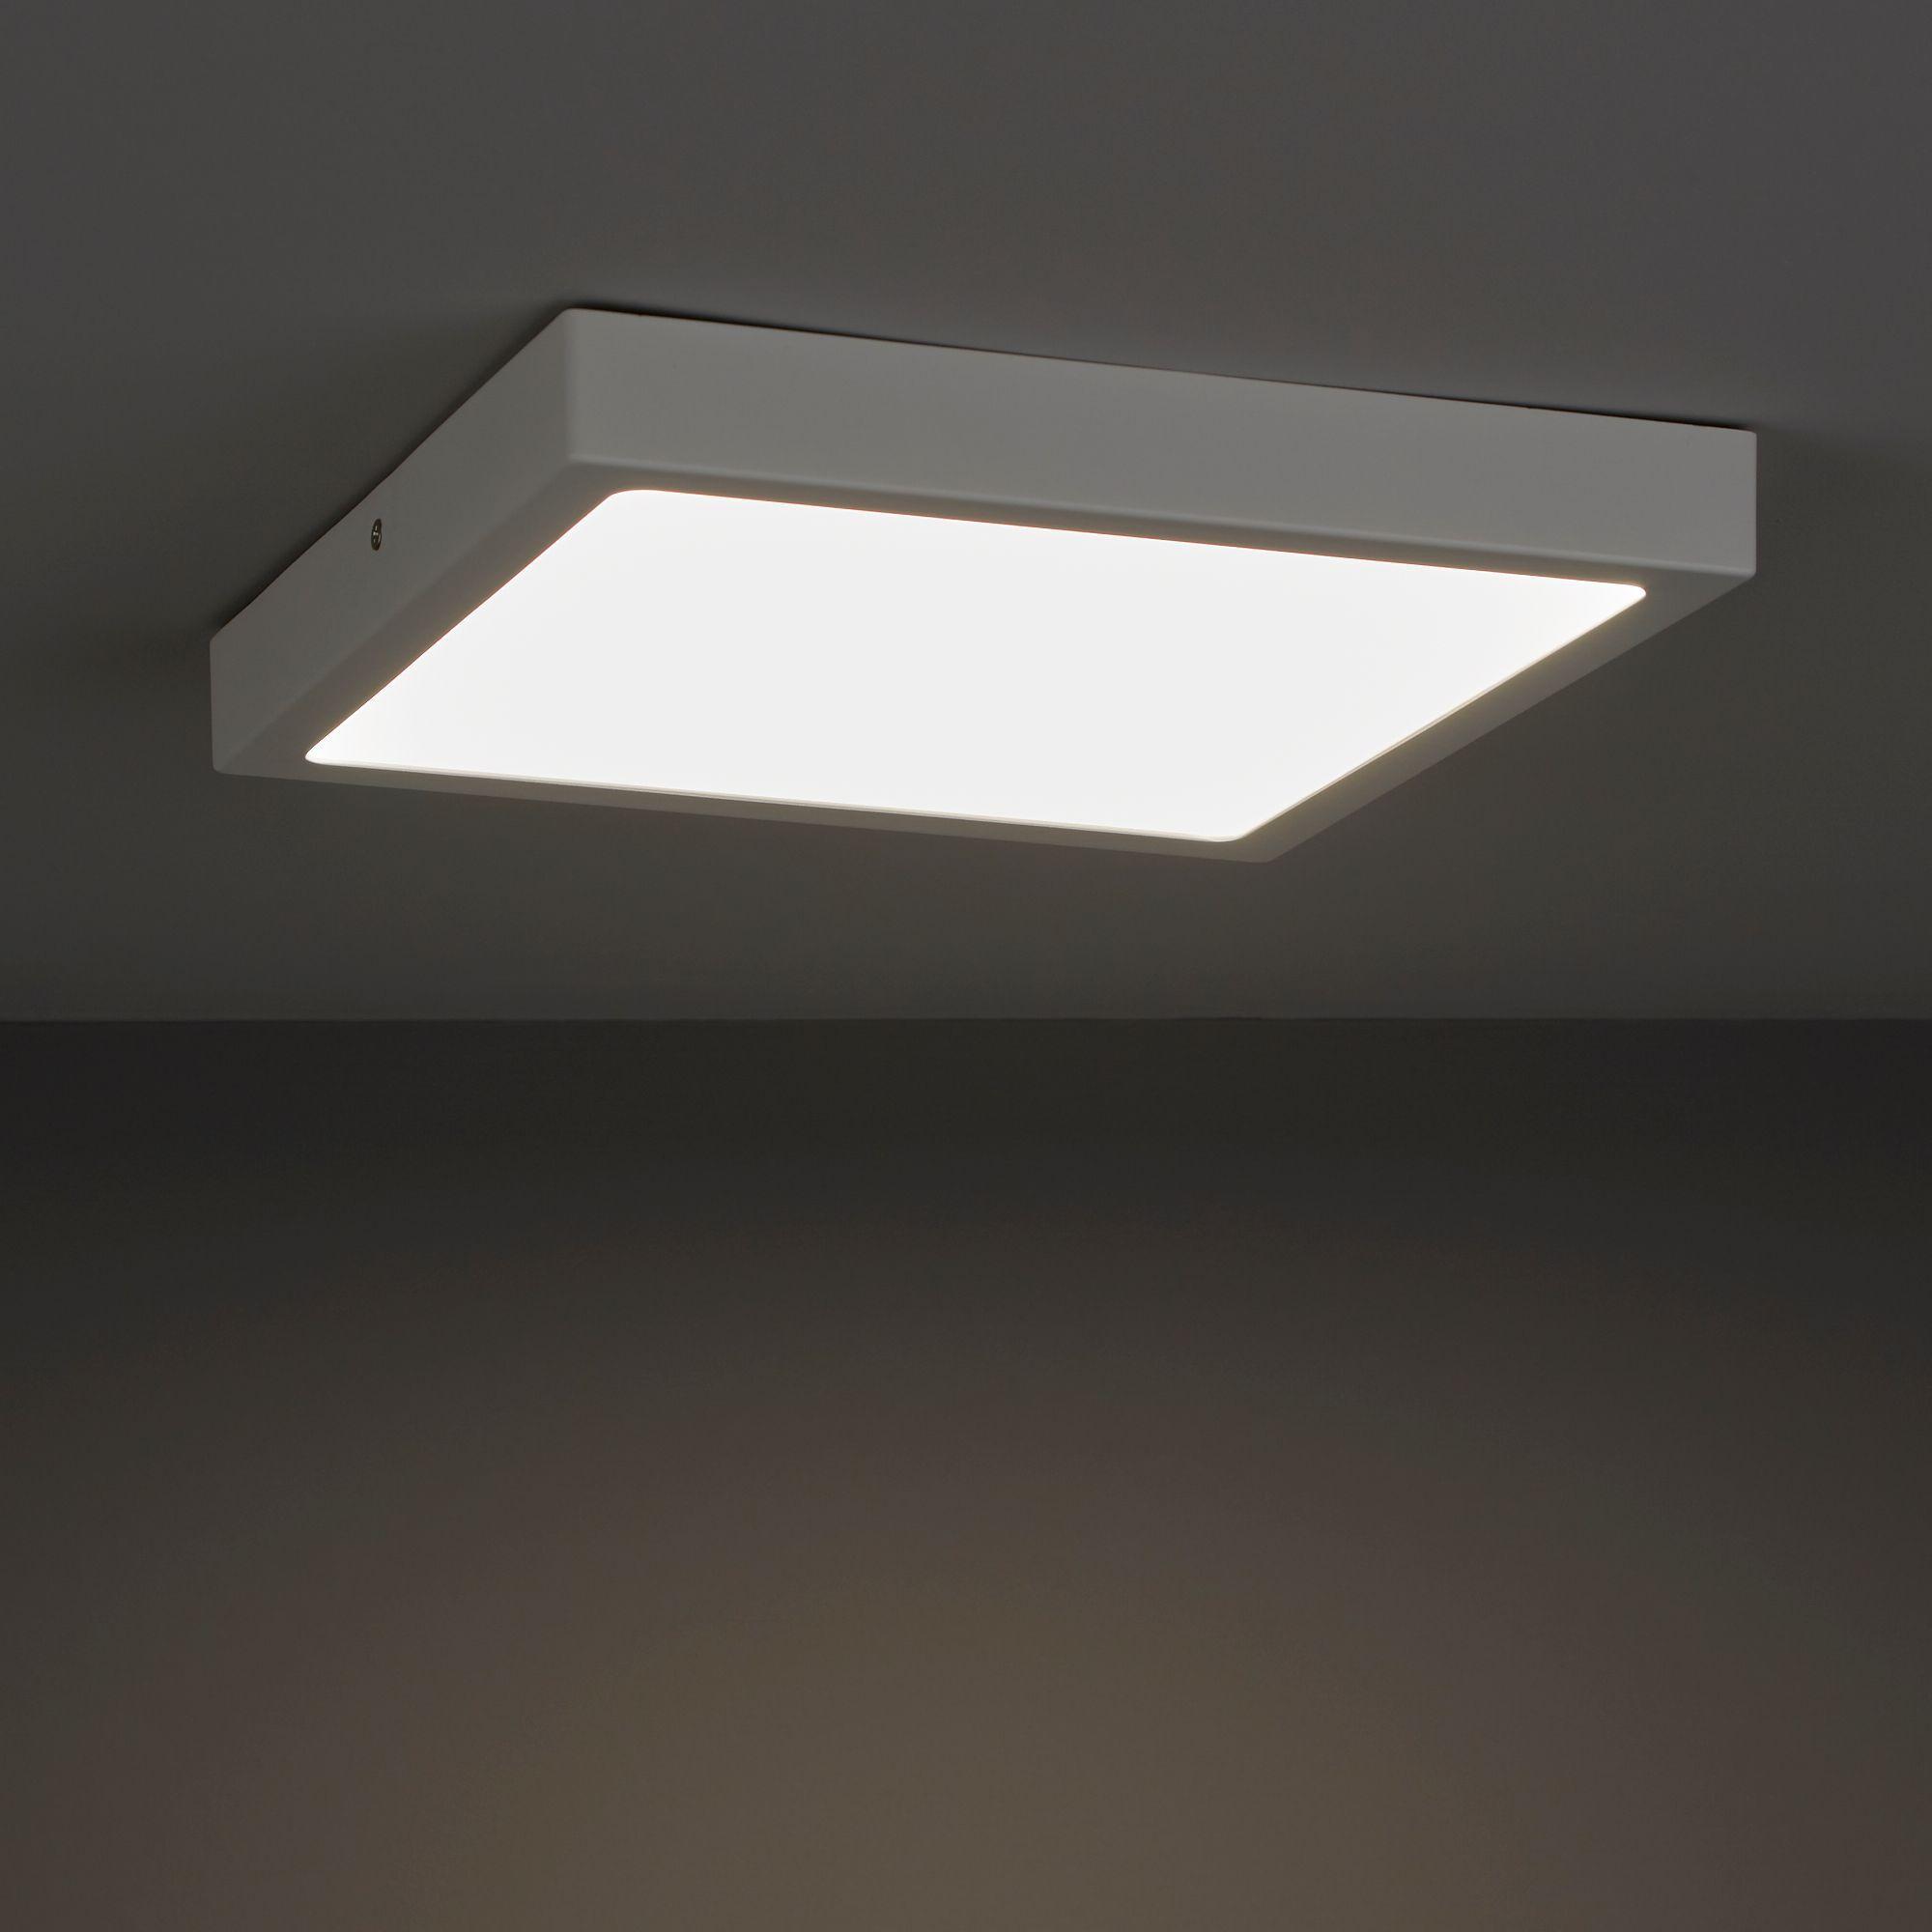 Hestia White Ceiling Light